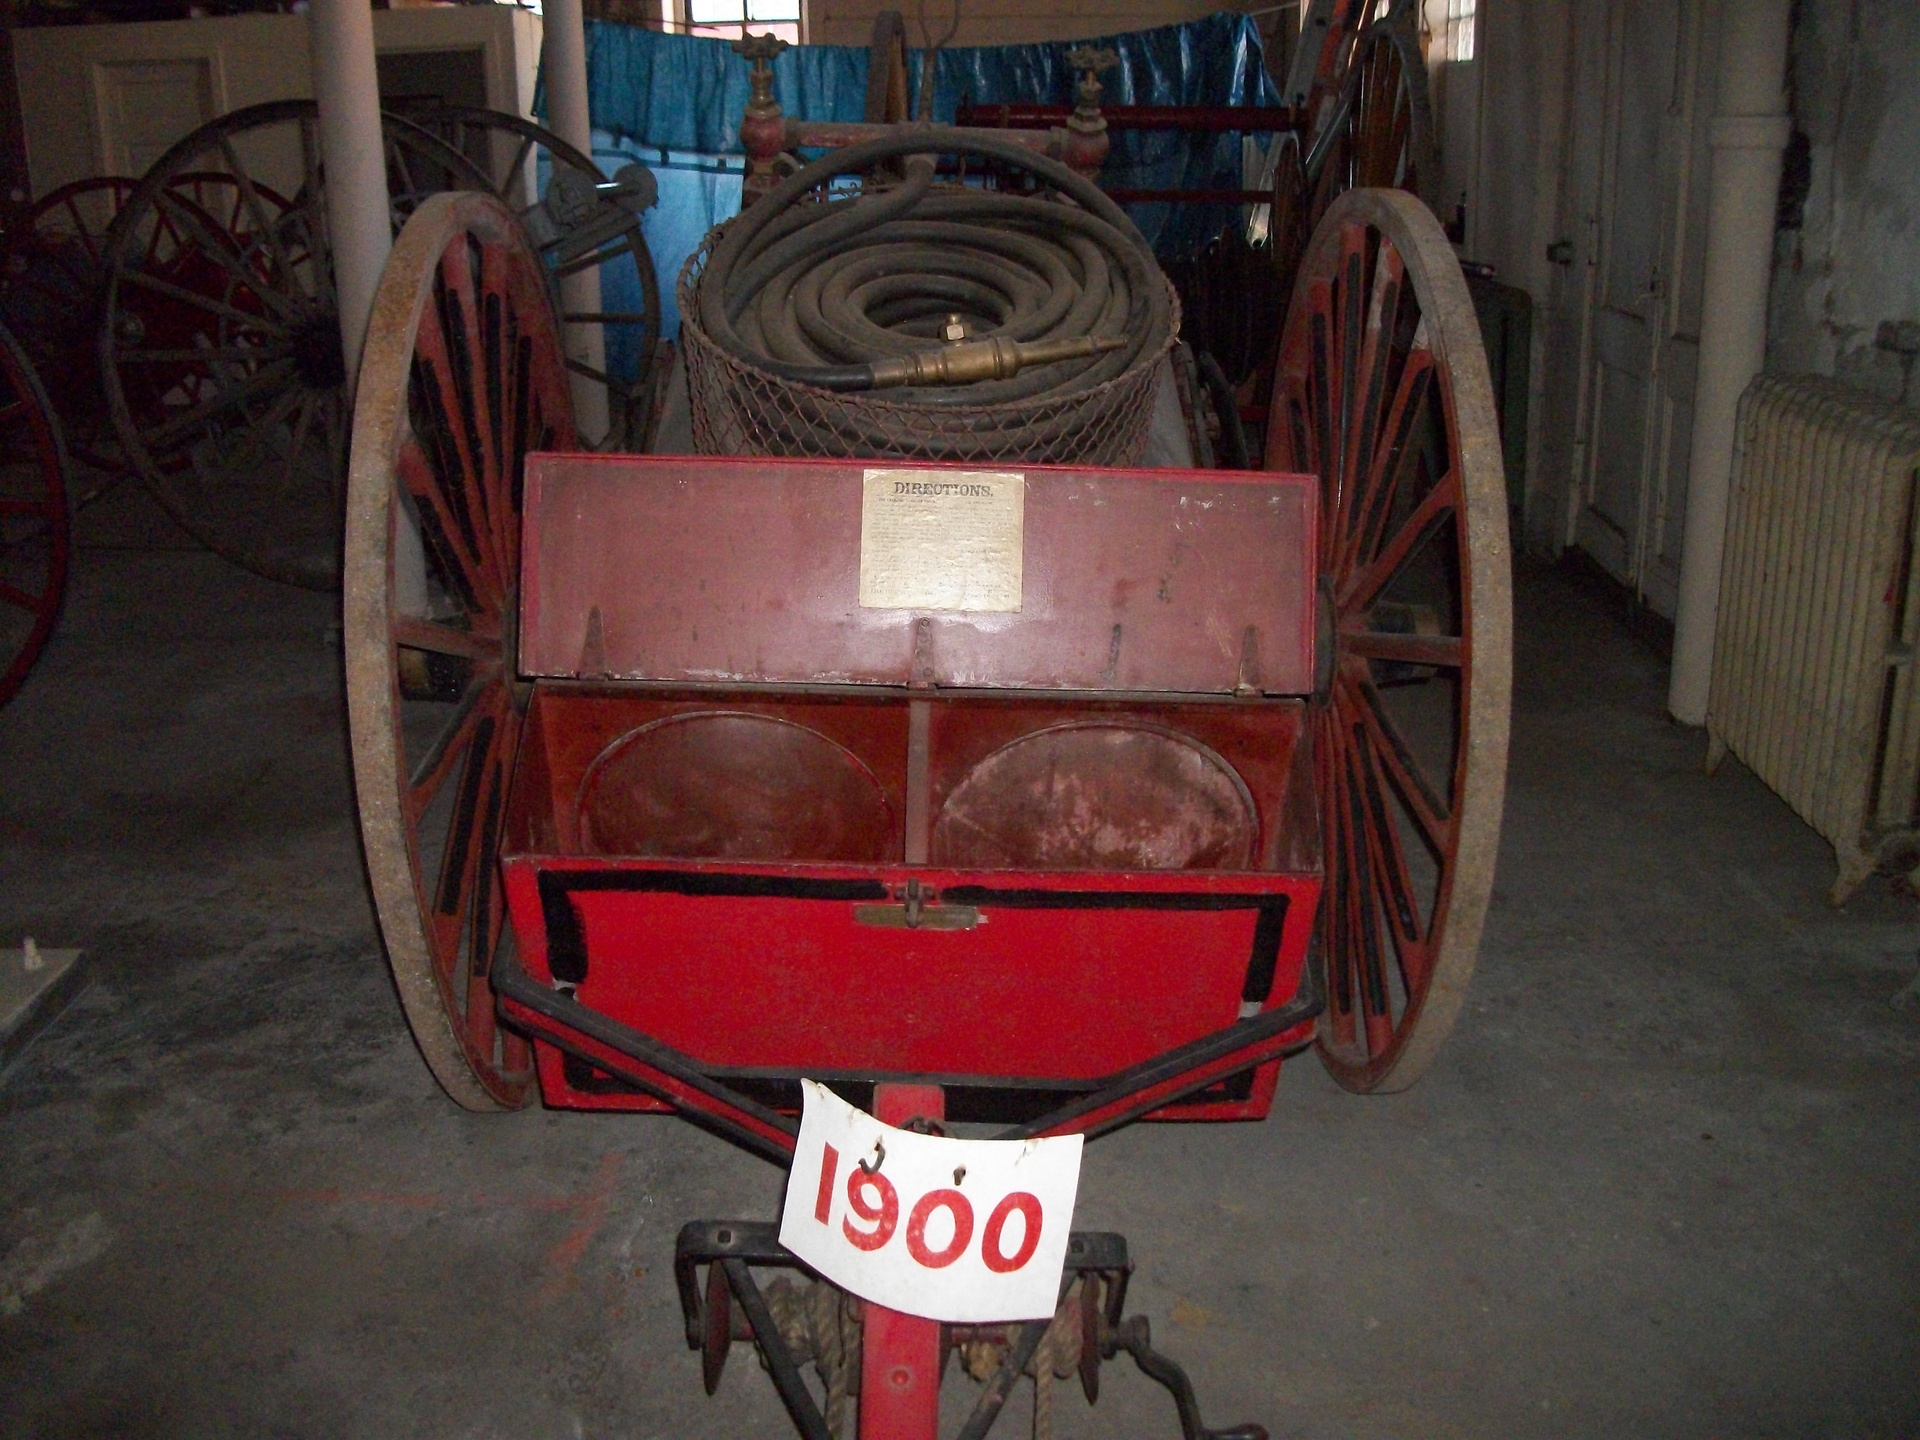 1900 Hose and Water Cart.